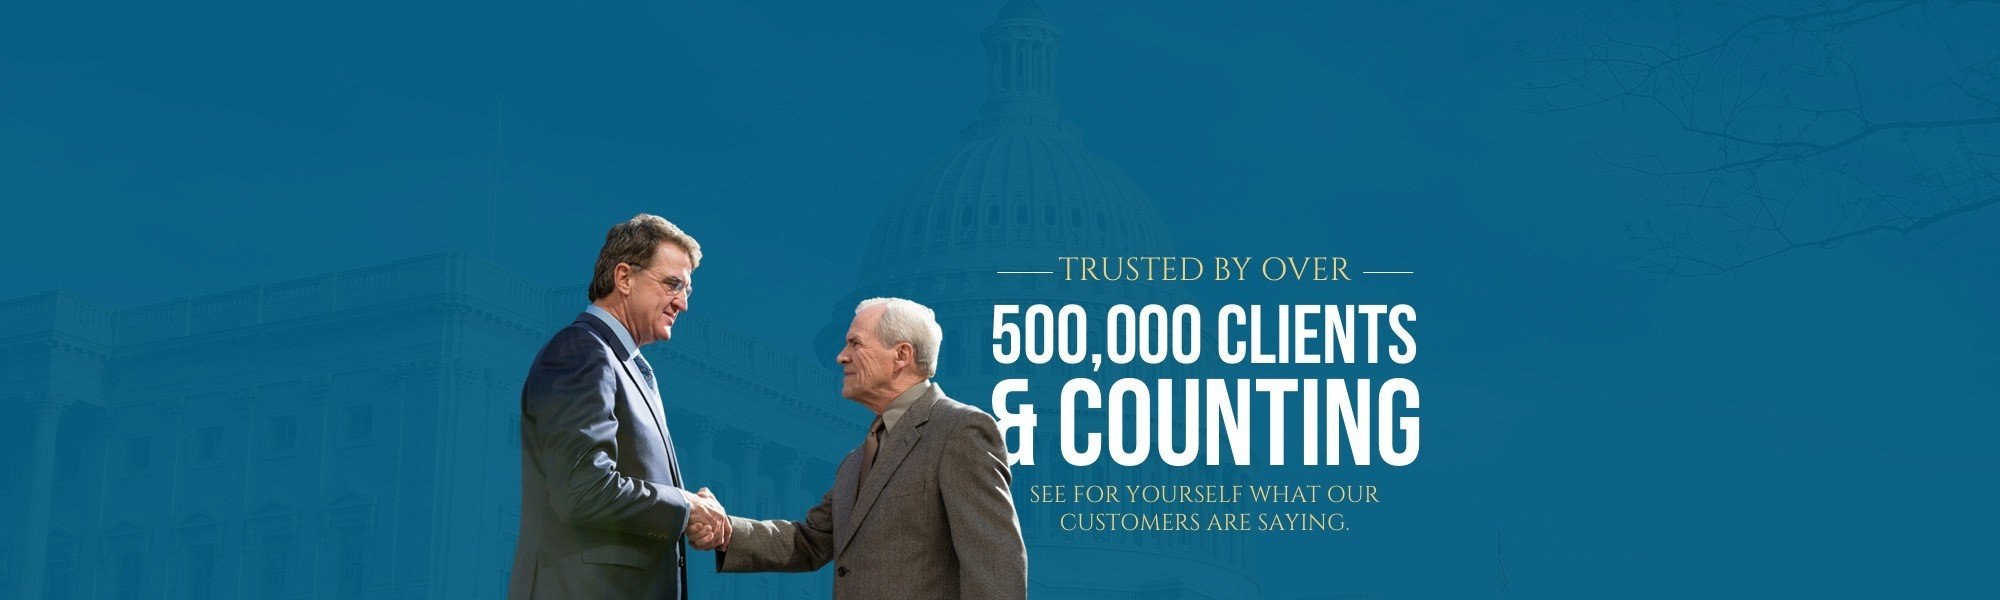 500,000 clients and counting